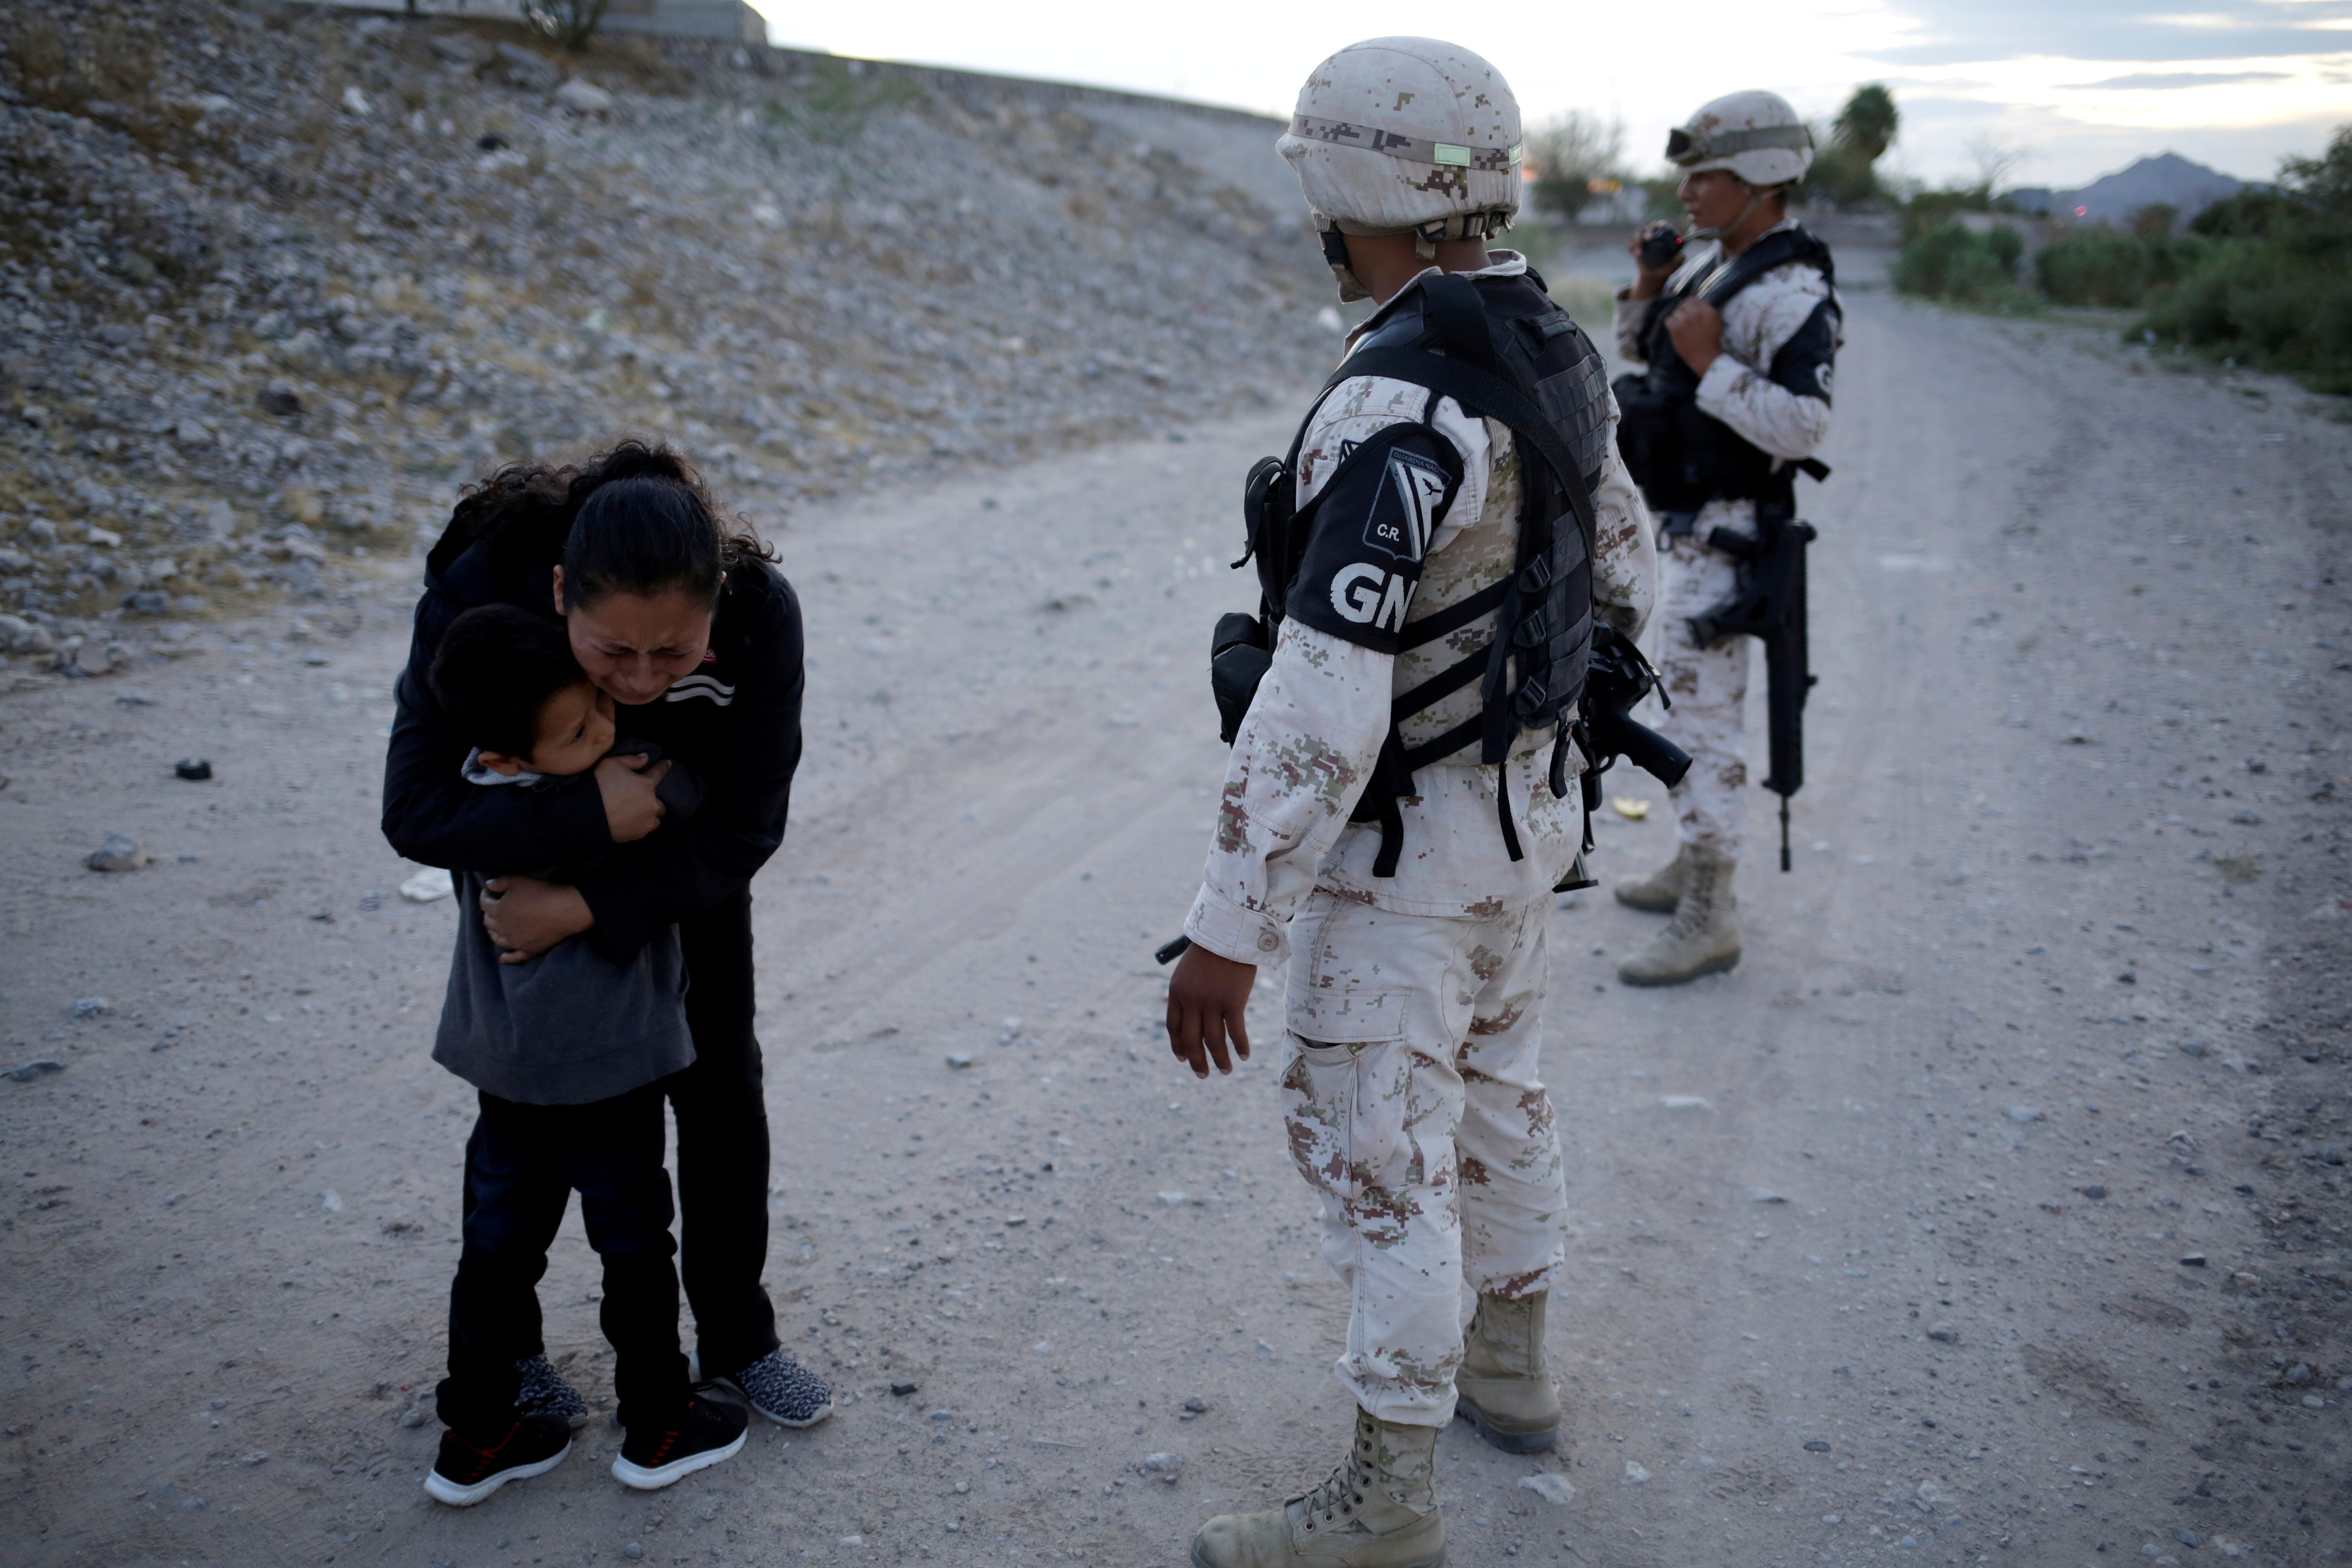 Guatemalan migrant Ledy Perez embraces her son Anthony while asking to members of the Mexican National Guard to let them cross into the United States, as seen from Ciudad Juarez, Mexico July 22, 2019. REUTERS/Jose Luis Gonzalez